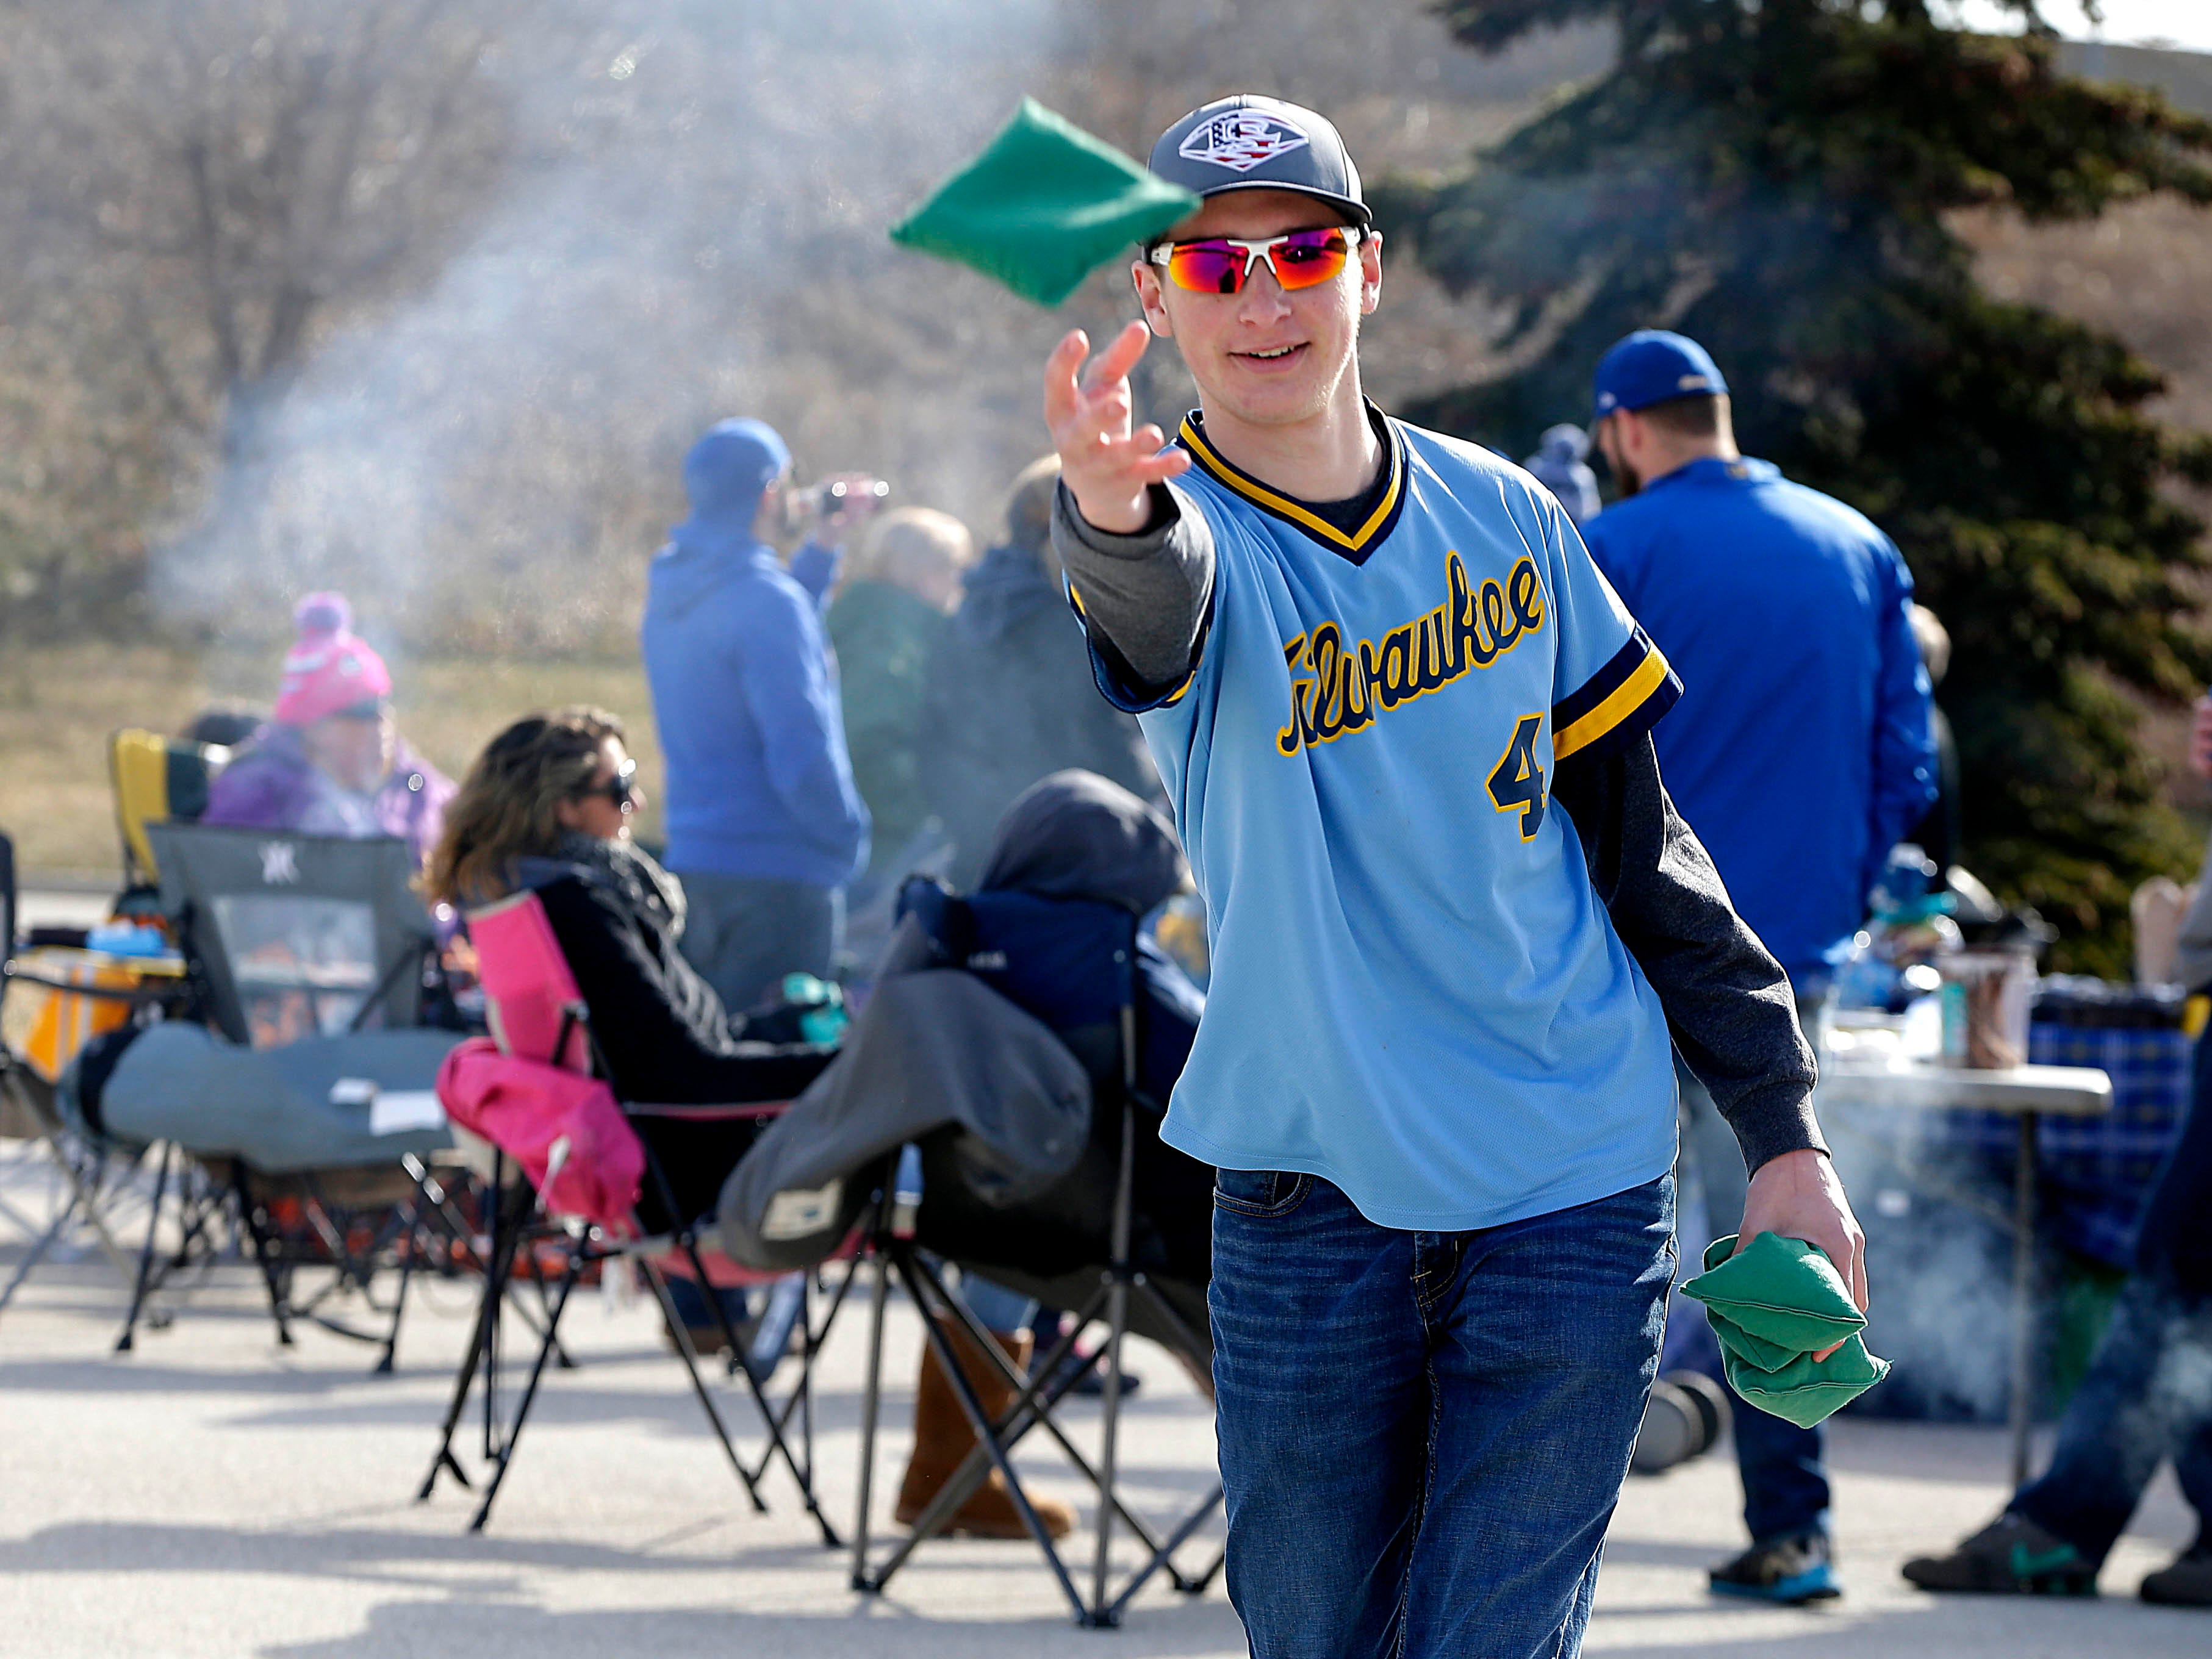 Ben Ludtke celebrates his third opening day playing cornhole before the Milwaukee Brewers' home opener against the St. Louis Cardinals at Miller Park on April 2, 2018. In the game, the Cardinals beat the Brewers, 8-4.